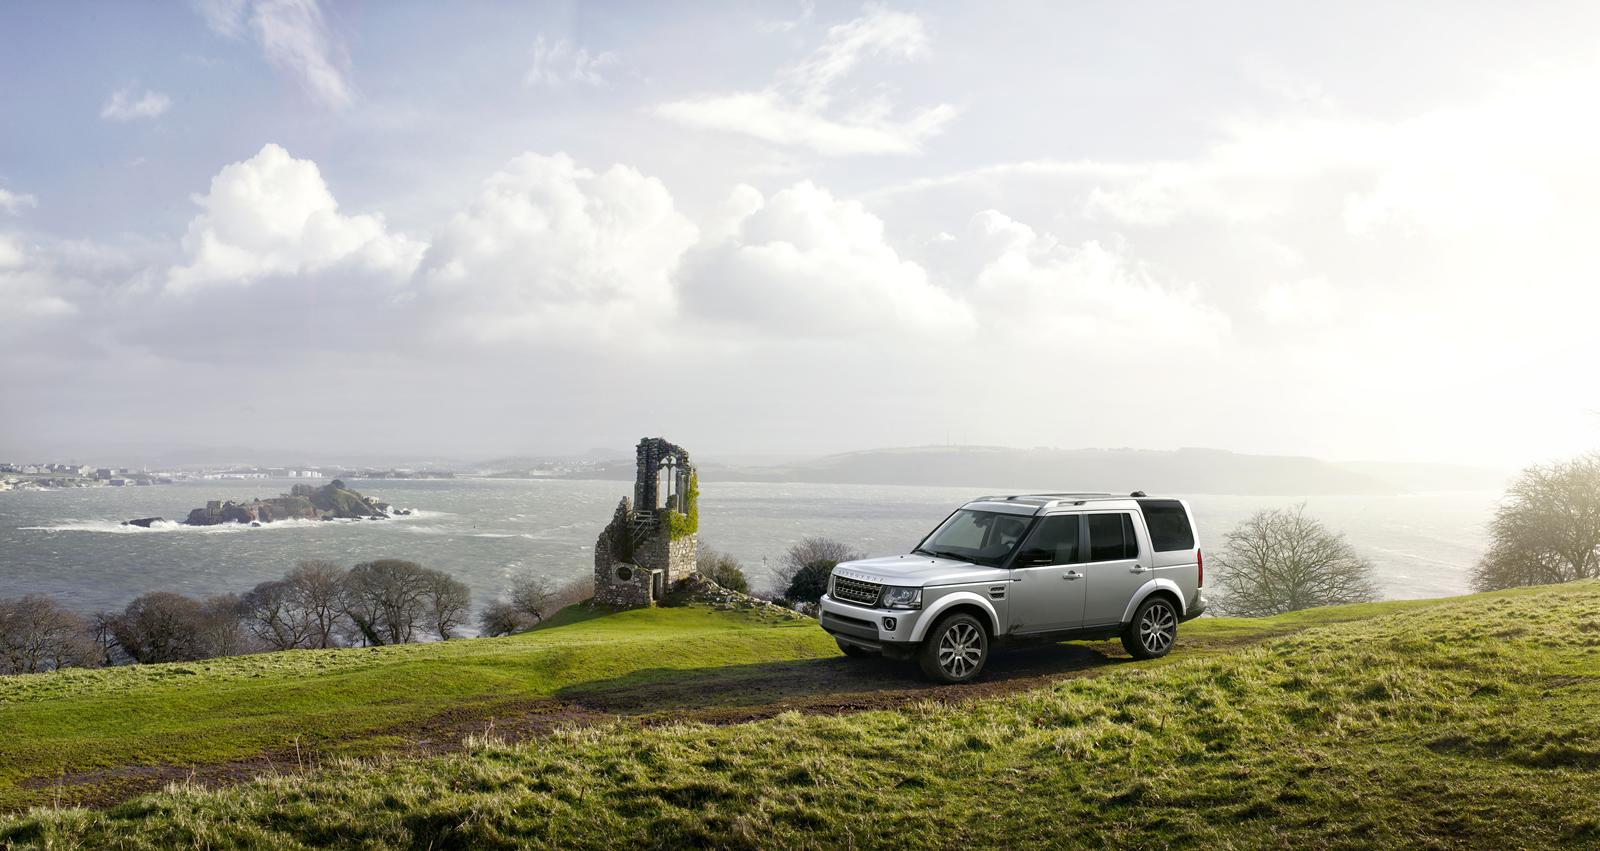 https://pictures.topspeed.com/IMG/jpg/201402/land-rover-discovery-2.jpg